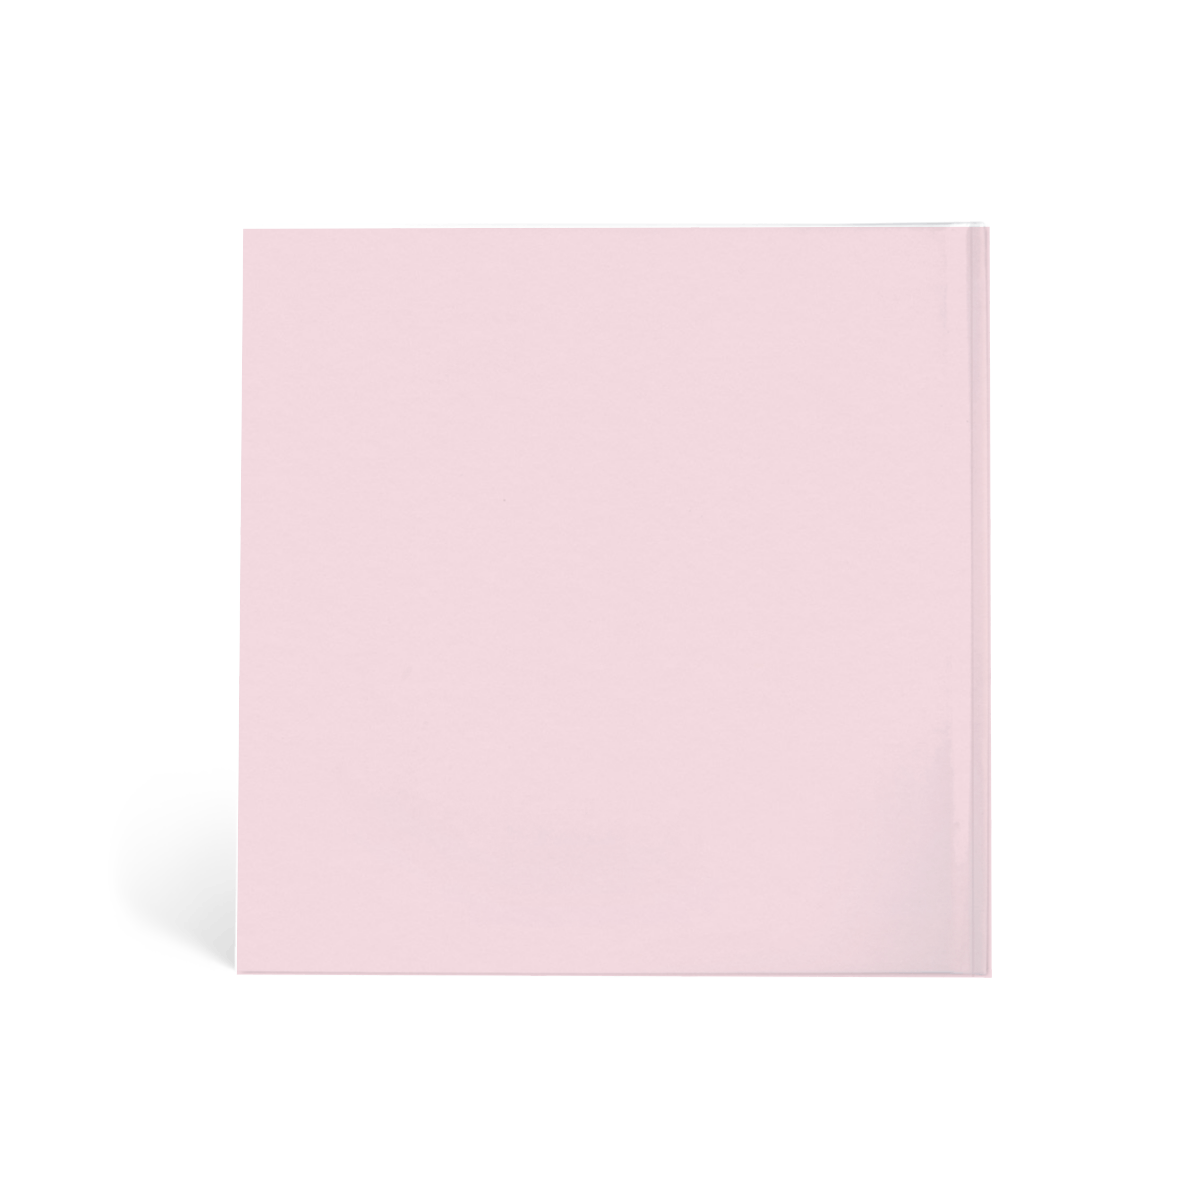 Https%3a%2f%2fwww.papier.com%2fproduct image%2f42477%2f24%2fcolour block 10869 arriere 1533138366.png?ixlib=rb 1.1